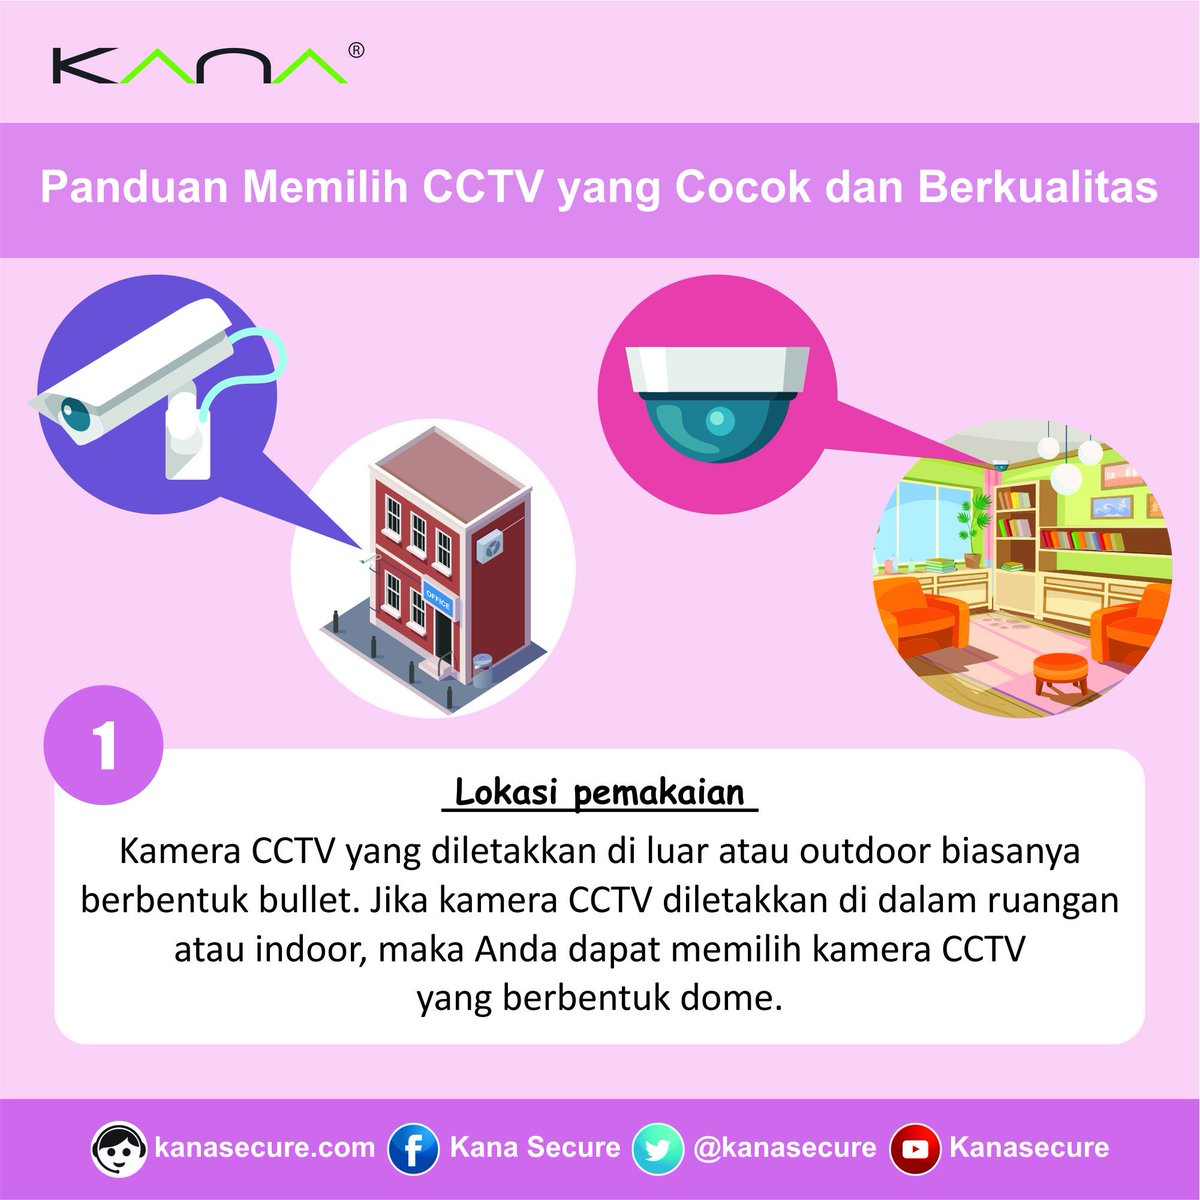 Kanasecure On Twitter How To Choose Cctv With Good Quality And Suitable For Your Need Check The Tips On Https T Co Jiwqjc0qm2 Cctv Hardware Technologies Technology Technologynews Tips Tipsandtricks Monitoring Security Securitytip